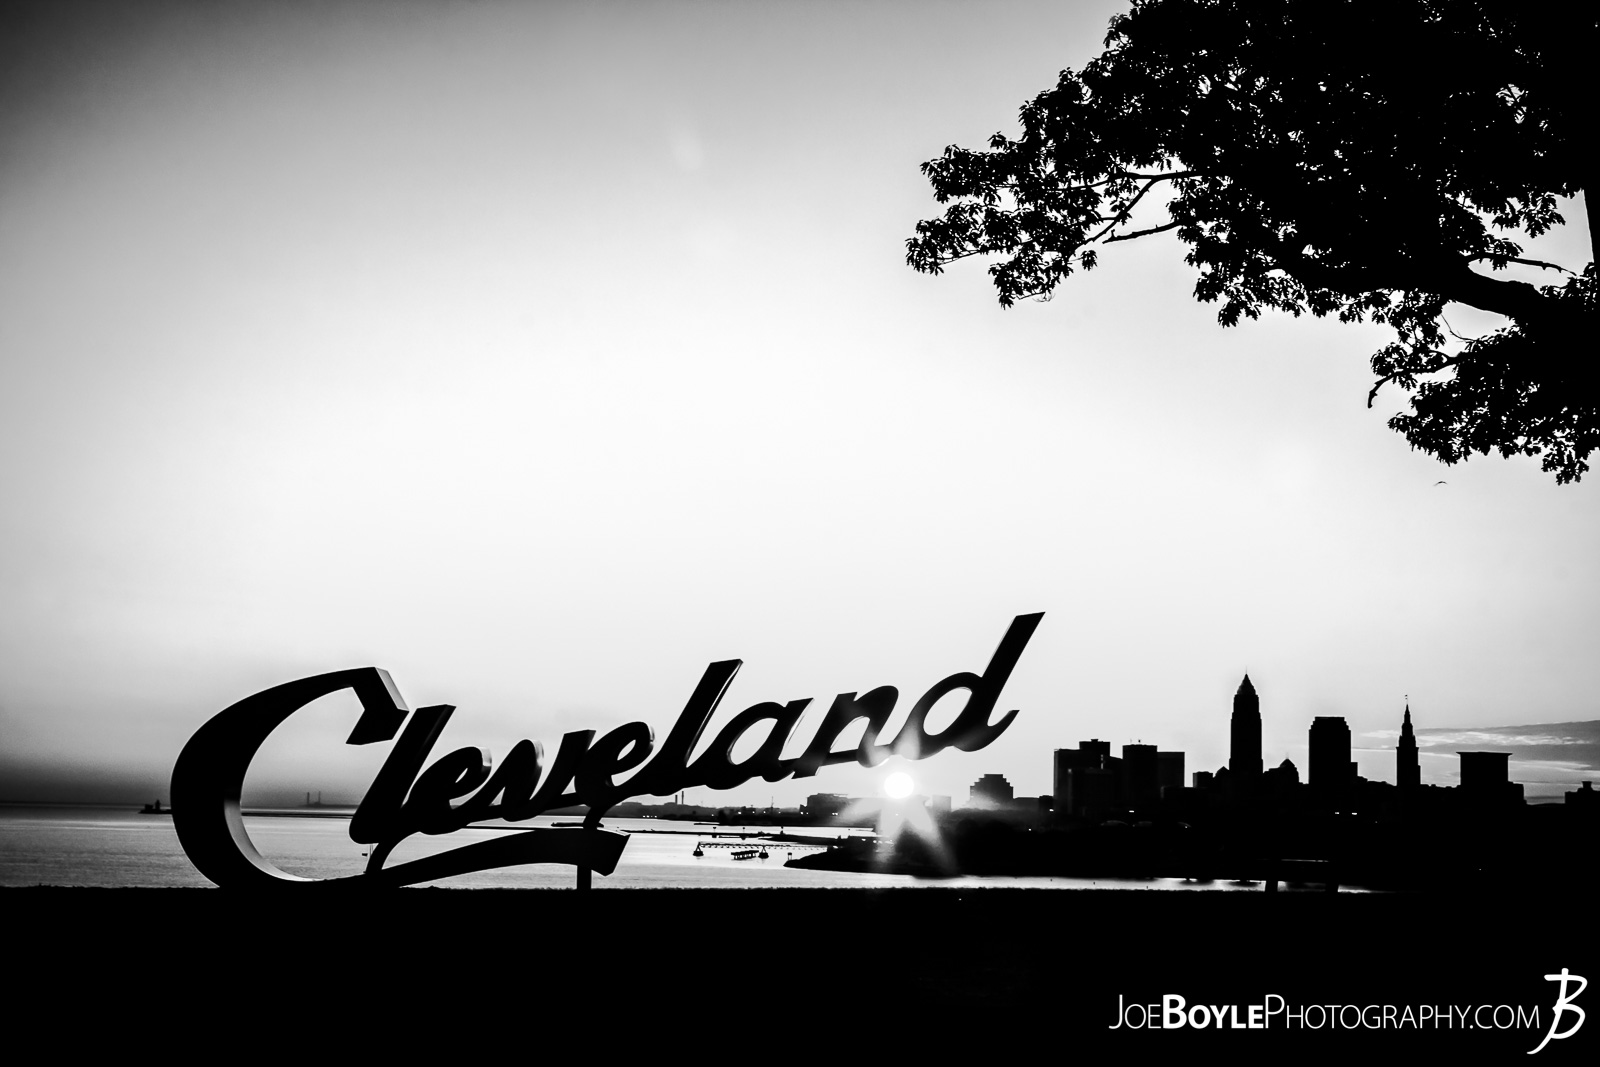 This photo is of the newly installed sign at Edgewater Park (The Upper Portion), right at sunrise! This sign was installed shortly after the Cleveland Cavs won the championship! You can find the color version of this photo here: Cleveland Sign During Sunrise At Edgewater Park (City Beneath The Sign II)